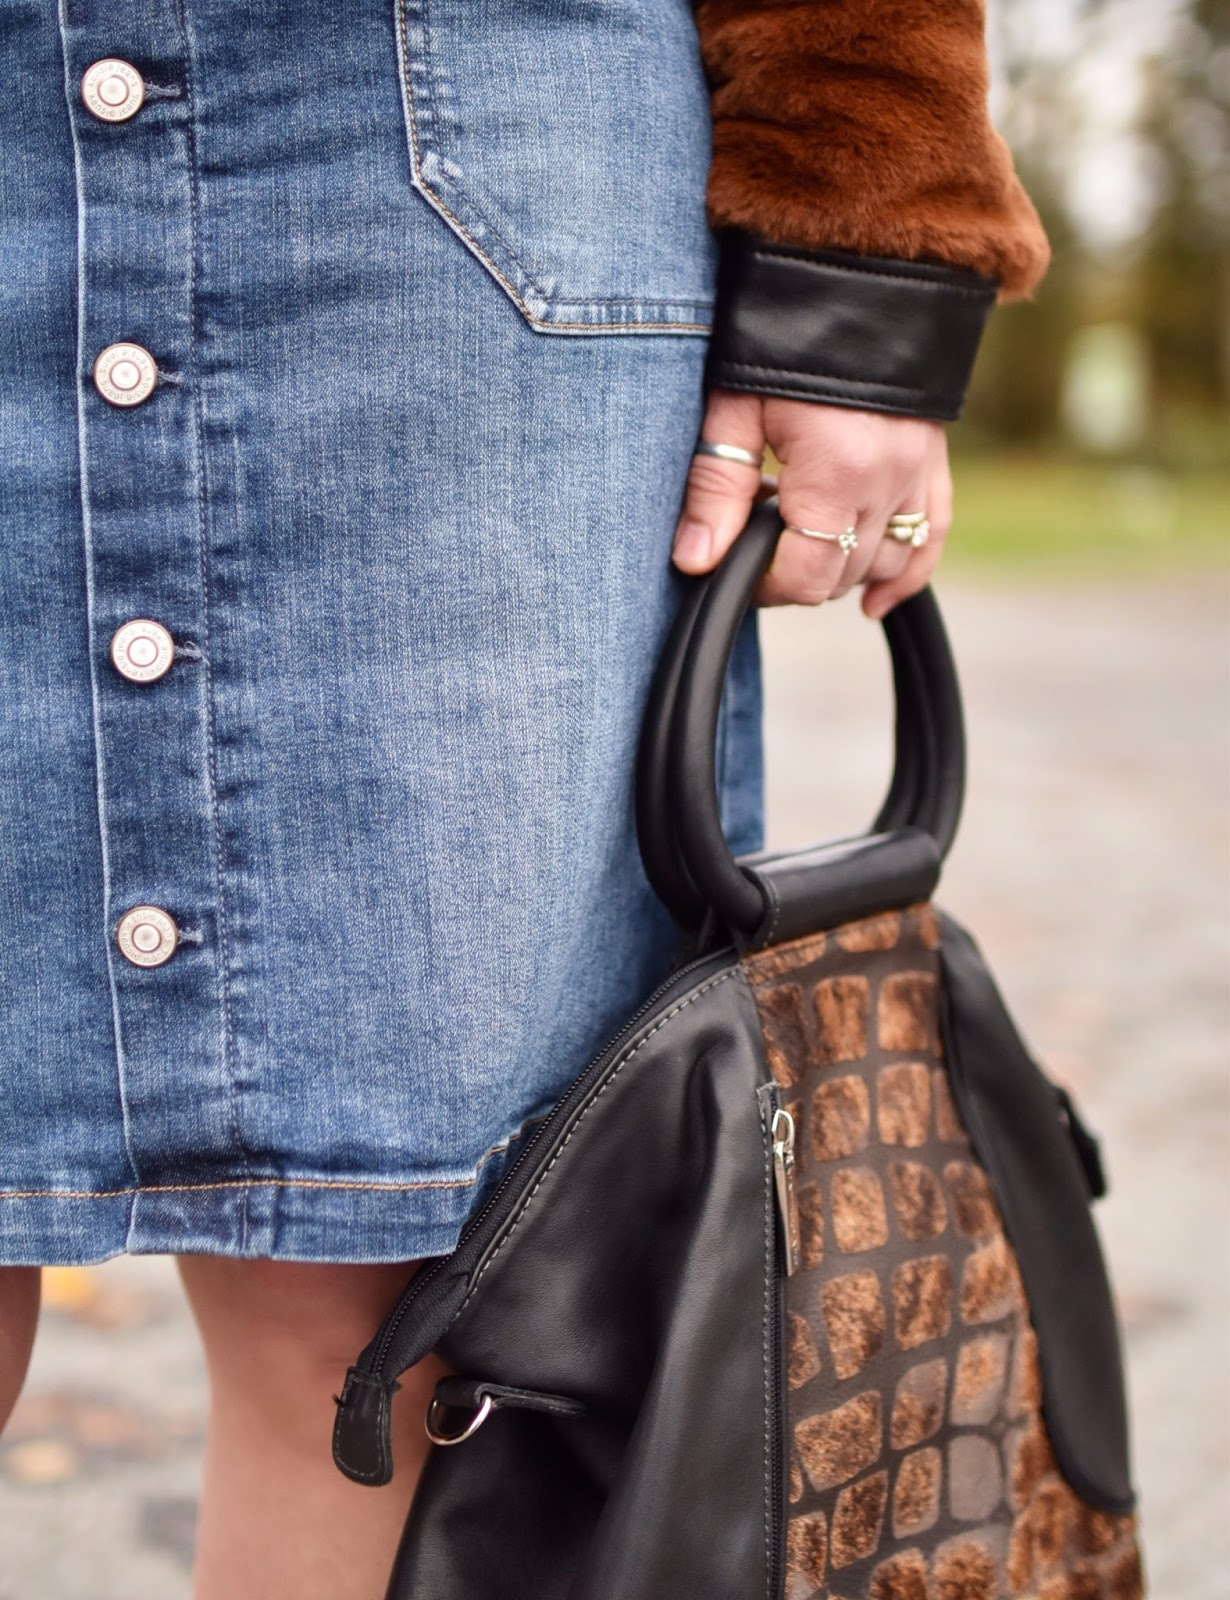 Monika Faulkner outfit inspiration - faux-fur bomber jacket, button-front denim skirt, Matteo Mio bag